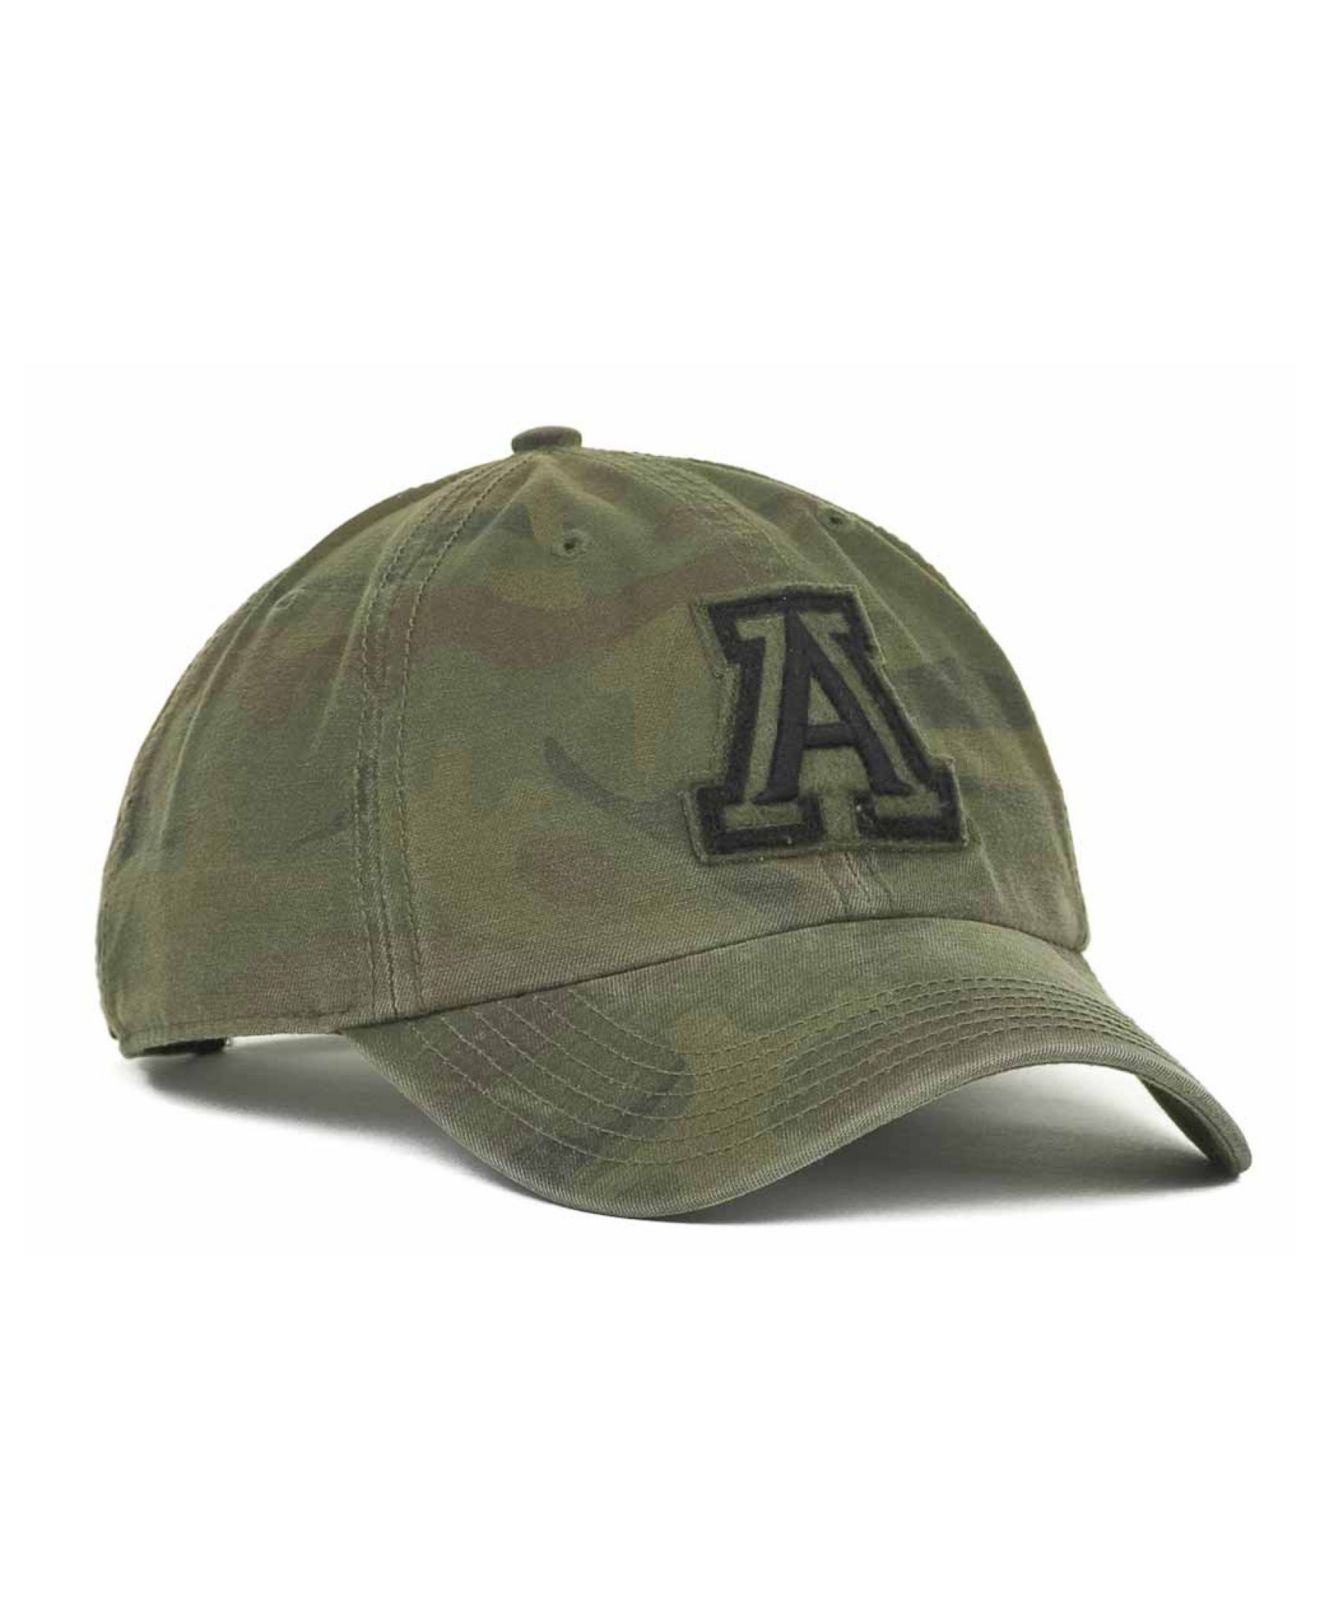 promo code 689d0 8995d uk lyst 47 brand arizona wildcats ncaa oht movement clean up cap in 0fcbc  b2646